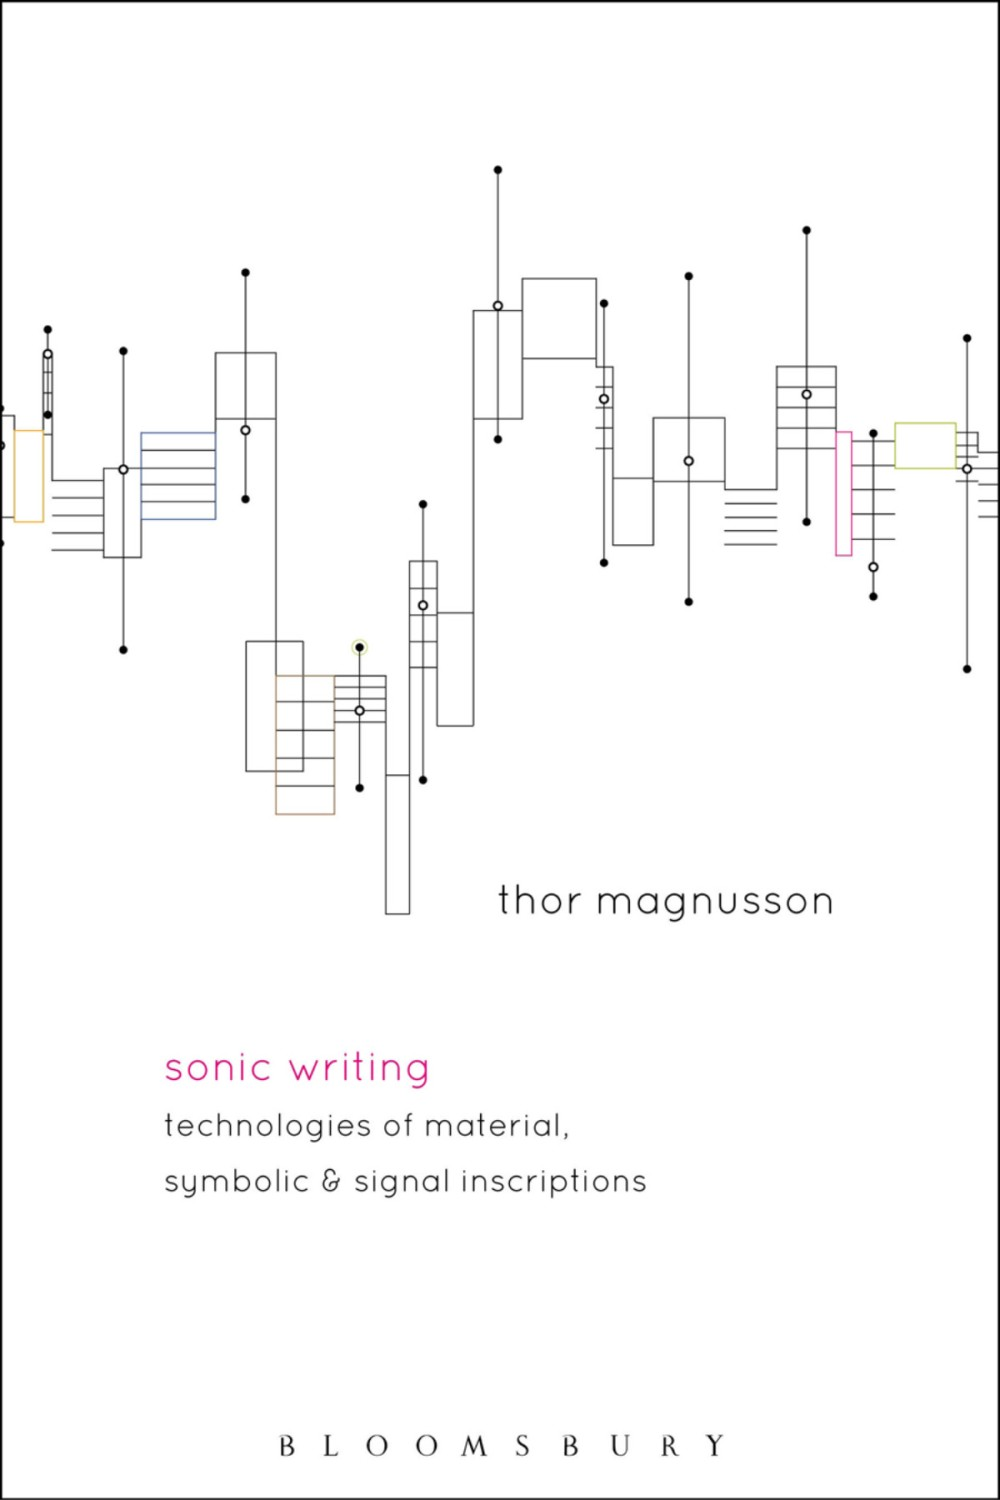 Magnusson_Thor_Sonic_Writing_Technologies_of_Material_Symbolic_and_Signal_Inscriptions_2019